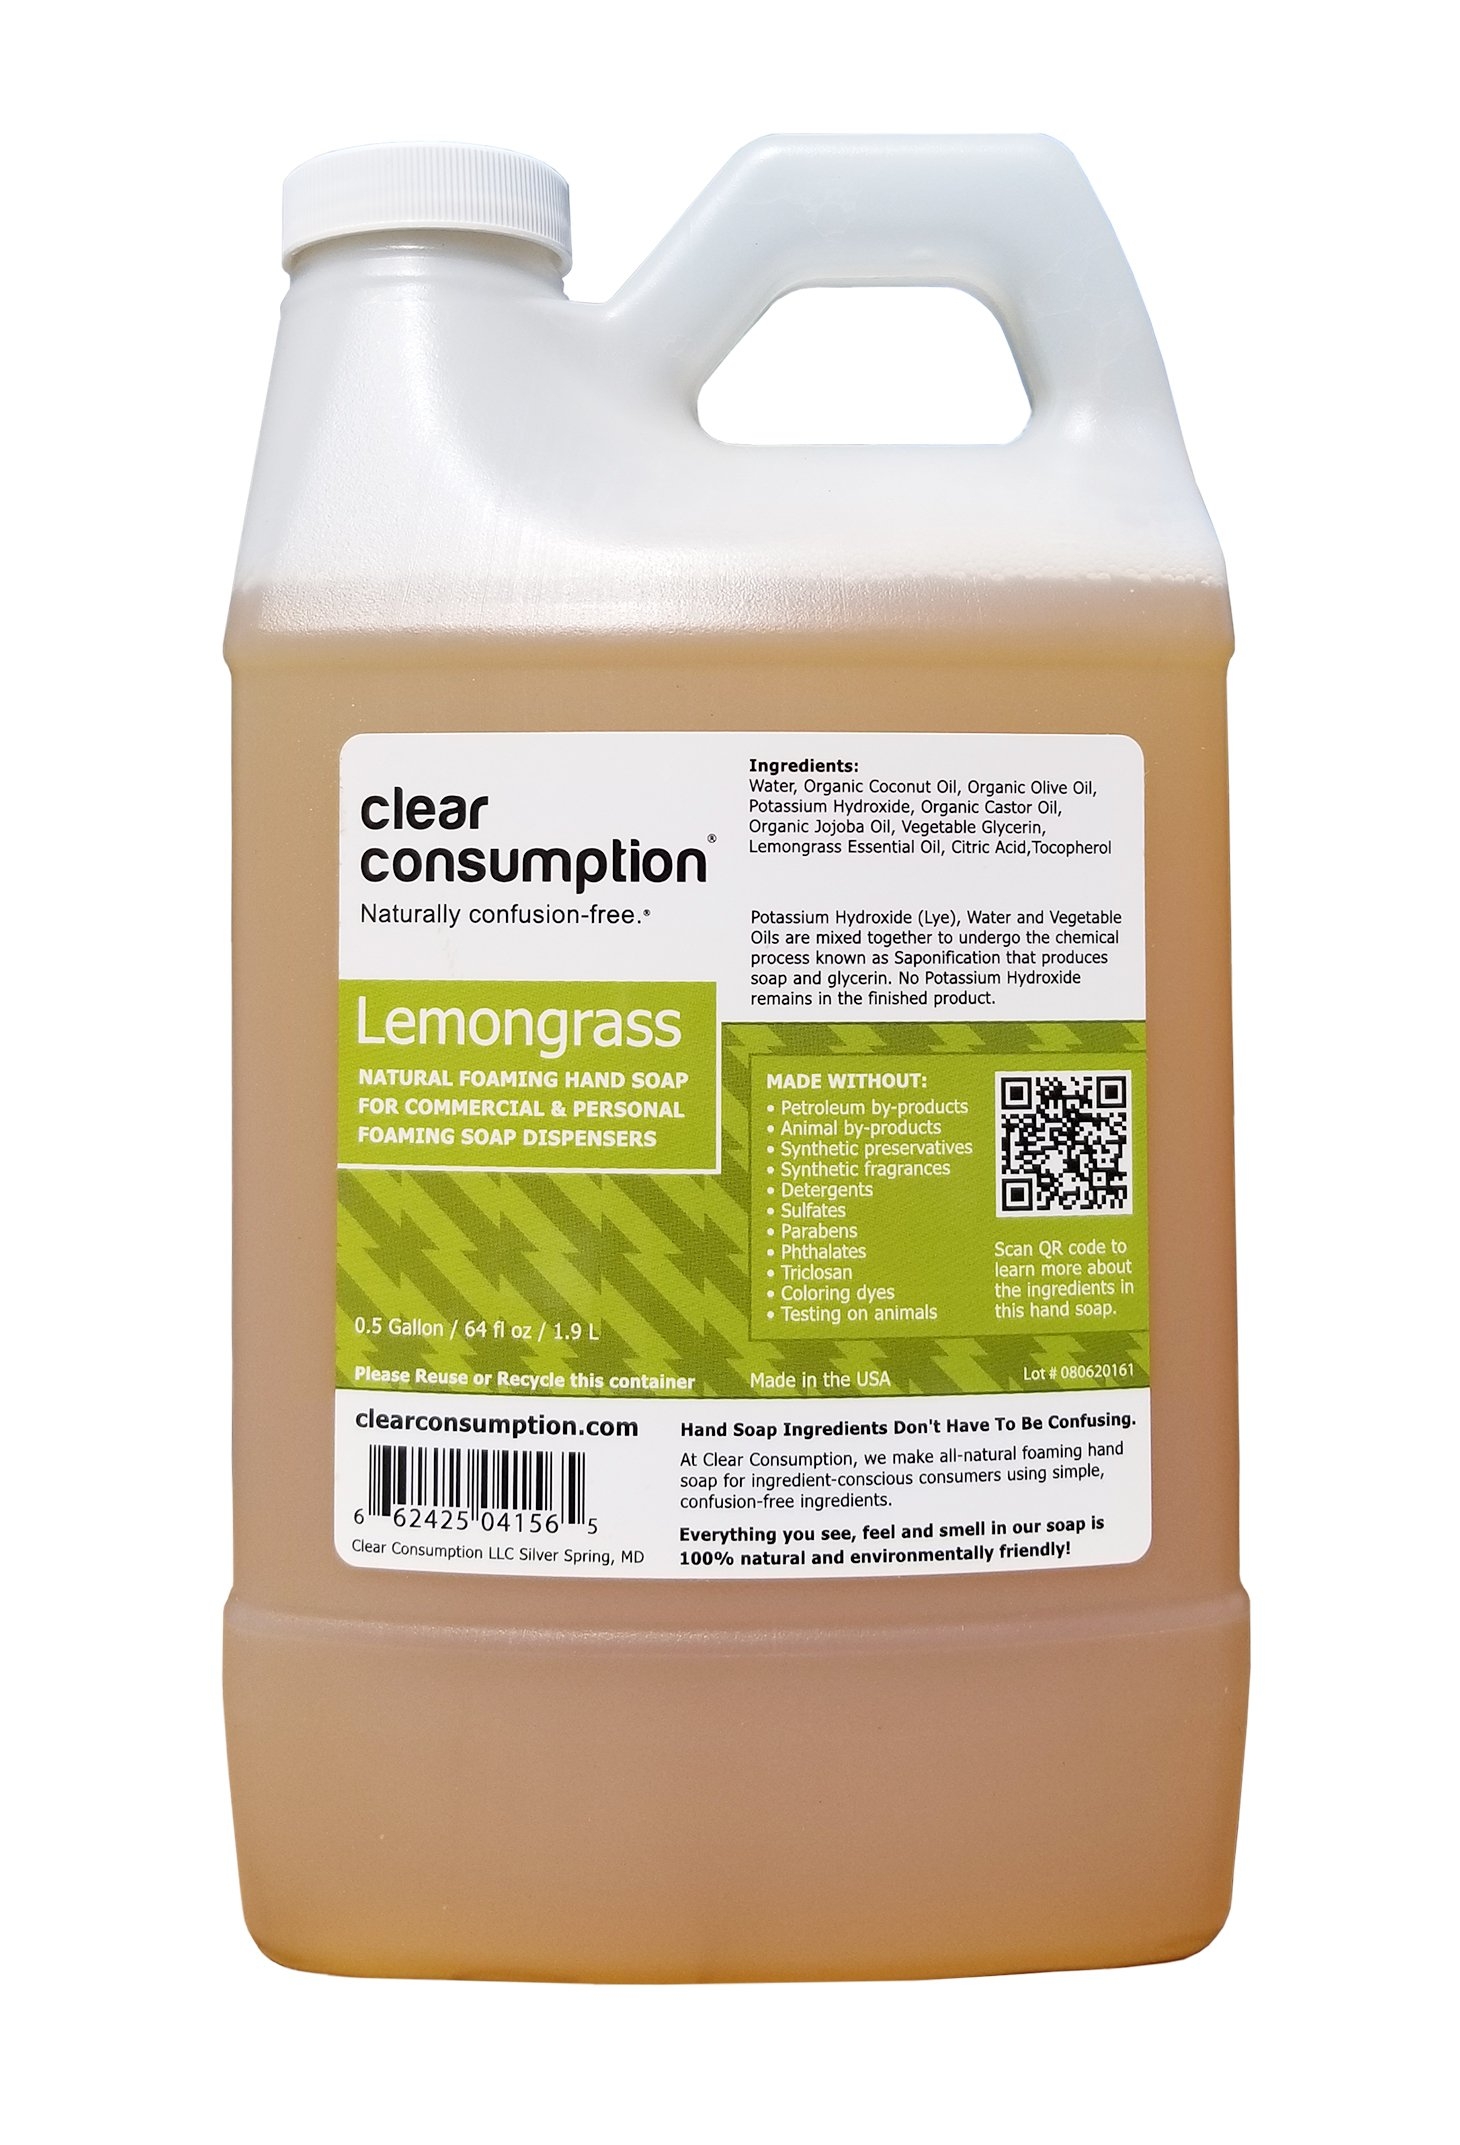 1/2 Gallon (64 oz) Lemongrass Clear Consumption Natural Foaming Hand Soap Refill - For Commercial & Personal Foaming Soap Dispensers